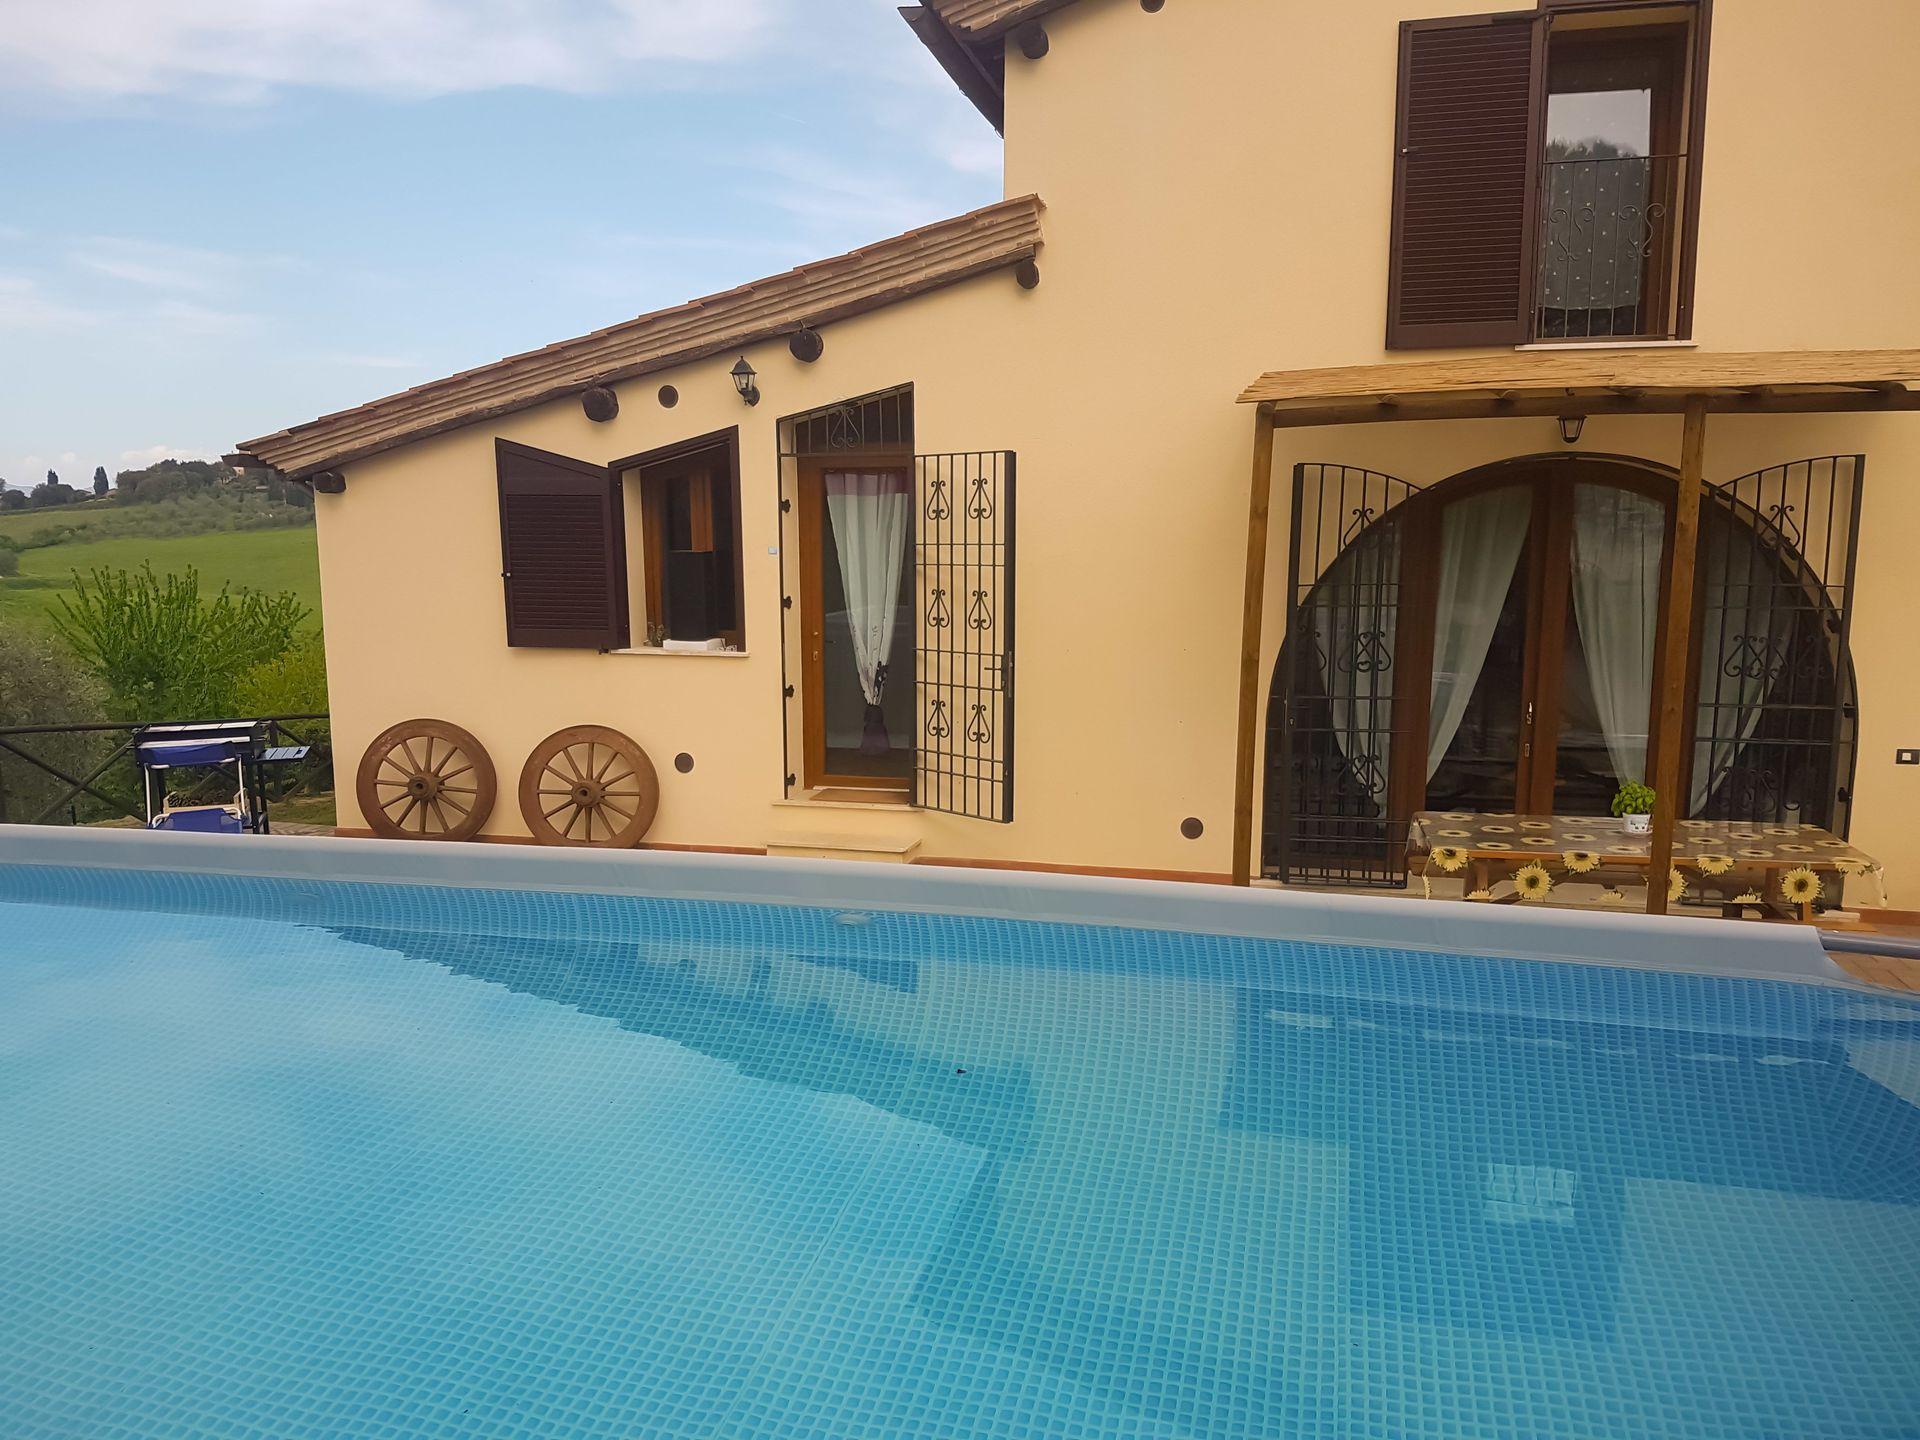 Villas Near Siena Italy villa degli olivi: villa that sleeps 6 people in 3 bedrooms